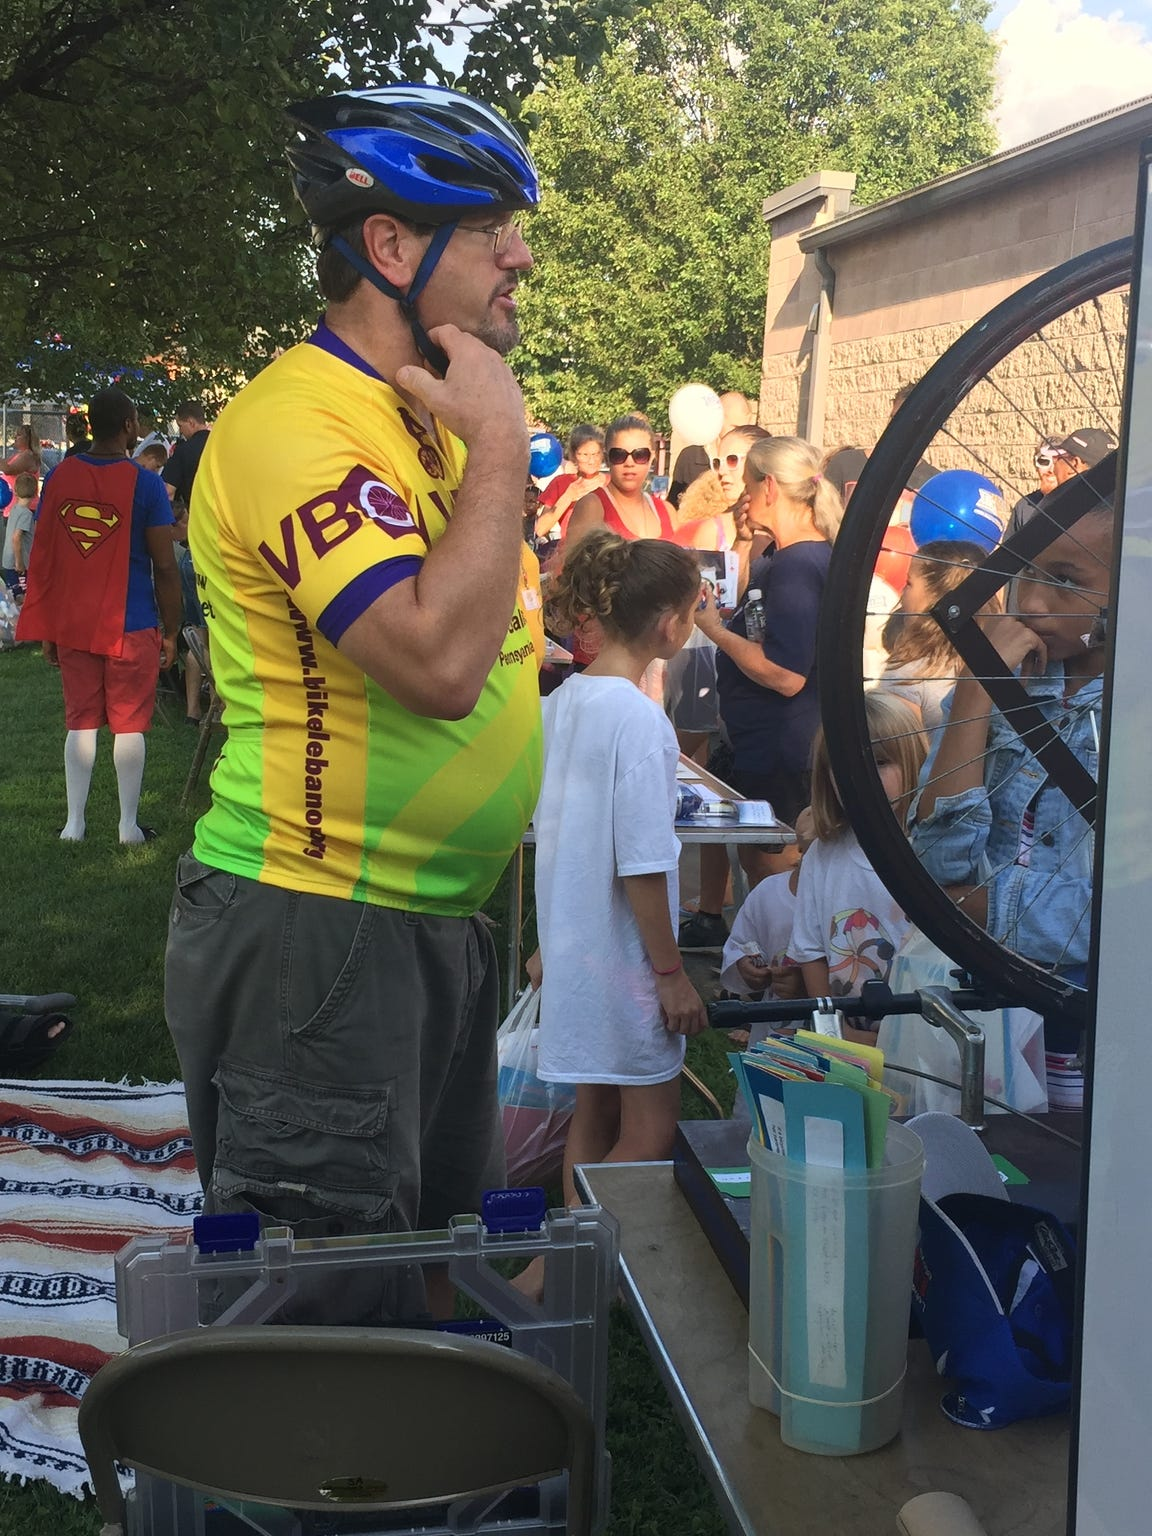 Dean Auchenbach, vice president of the Lebanon Valley Bicycle Coalition, demonstrates how to put on a helmet Aug. 1 during National Night Out on Guilford Street in Lebanon.